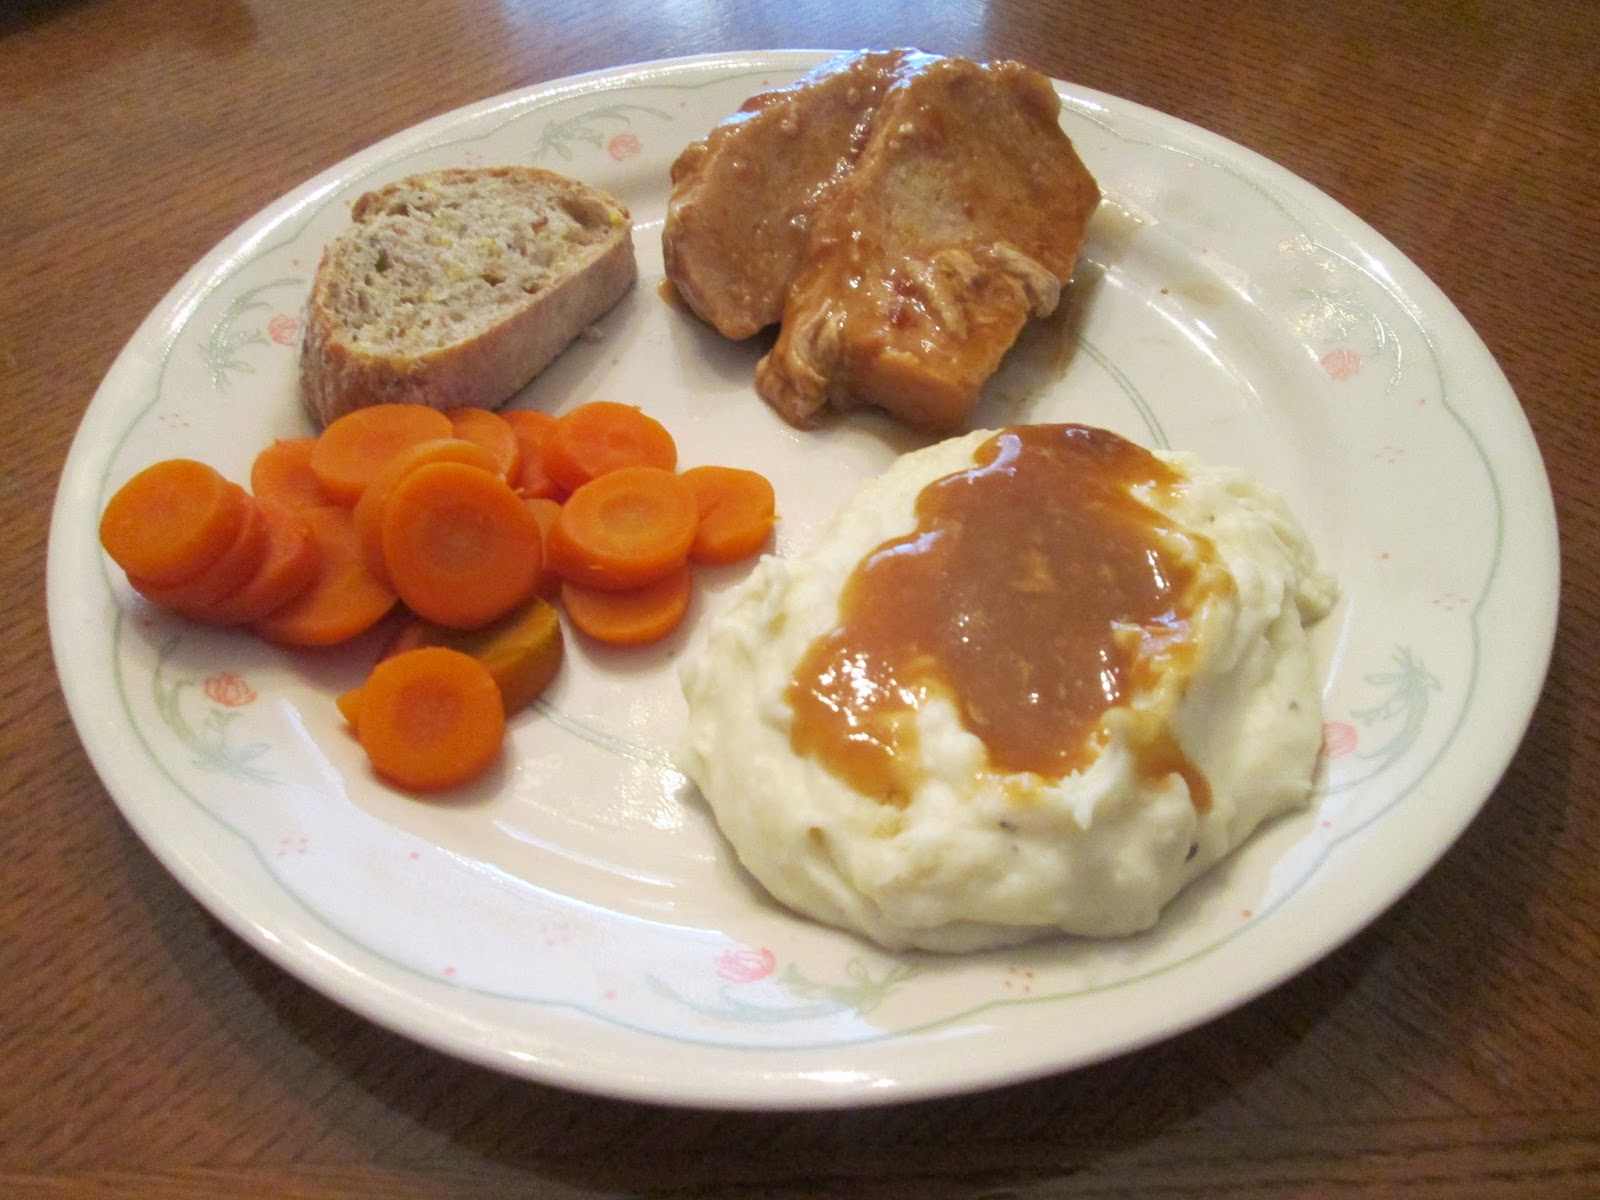 Diab2cook White Turkey Gravy W Mashed Potatoes And Sliced Carrots